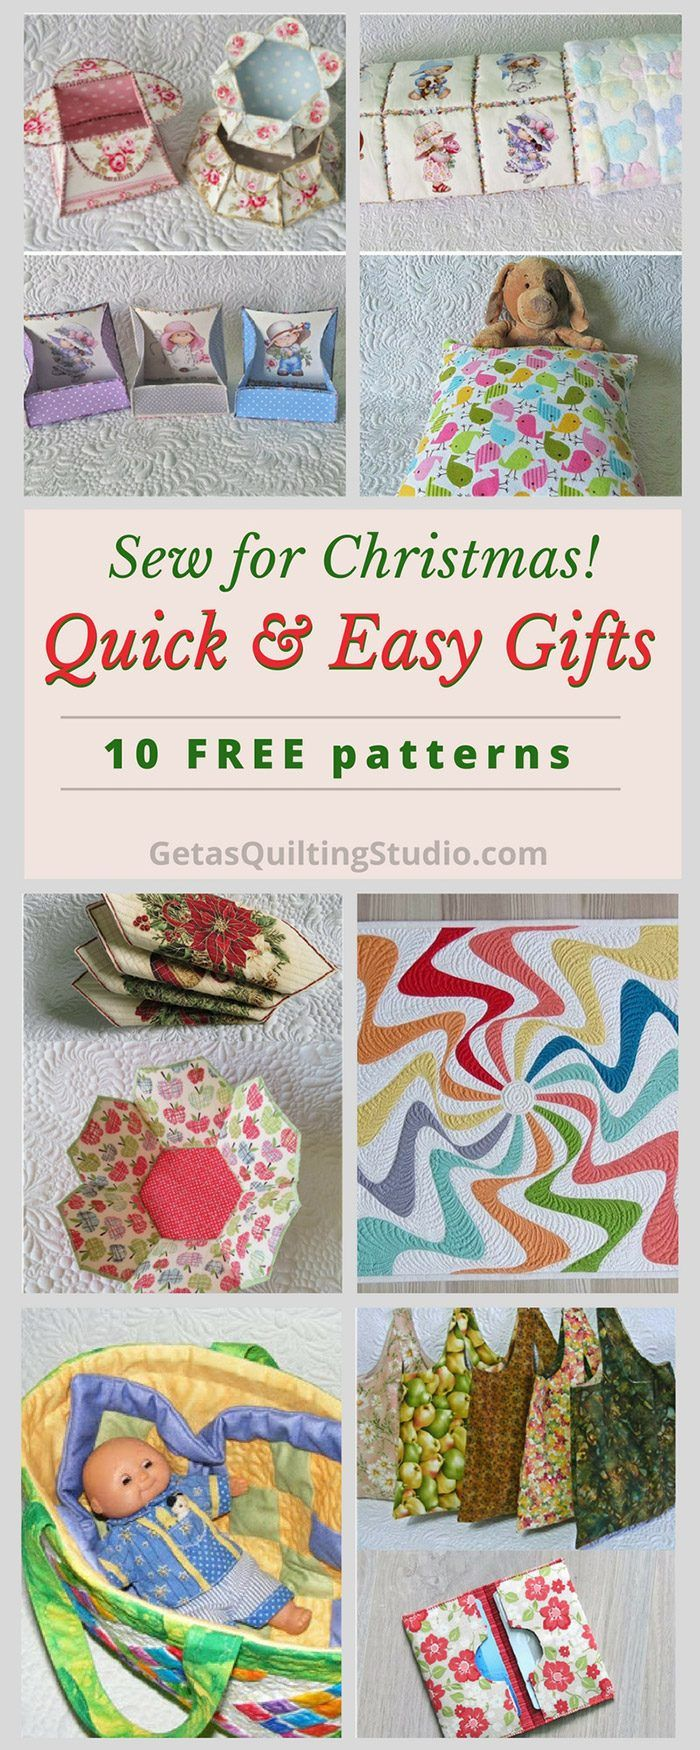 Quick and Easy Gifts to Sew for Christmas | Easy gifts, Free pattern ...